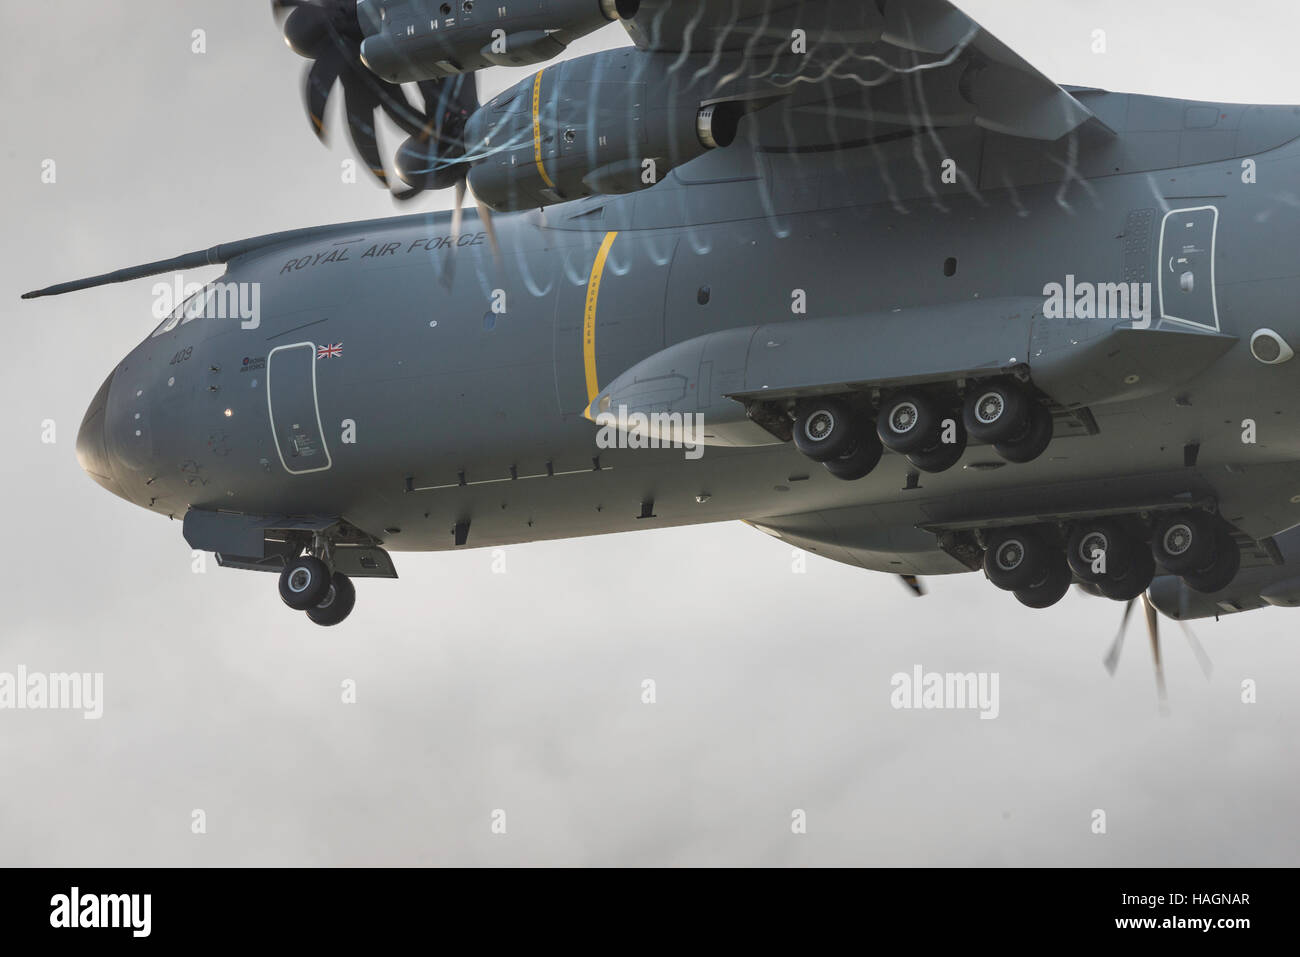 A400 Atlas Raf Valley Anglesey North Wales Uk wheels down. Royal Air Force. - Stock Image